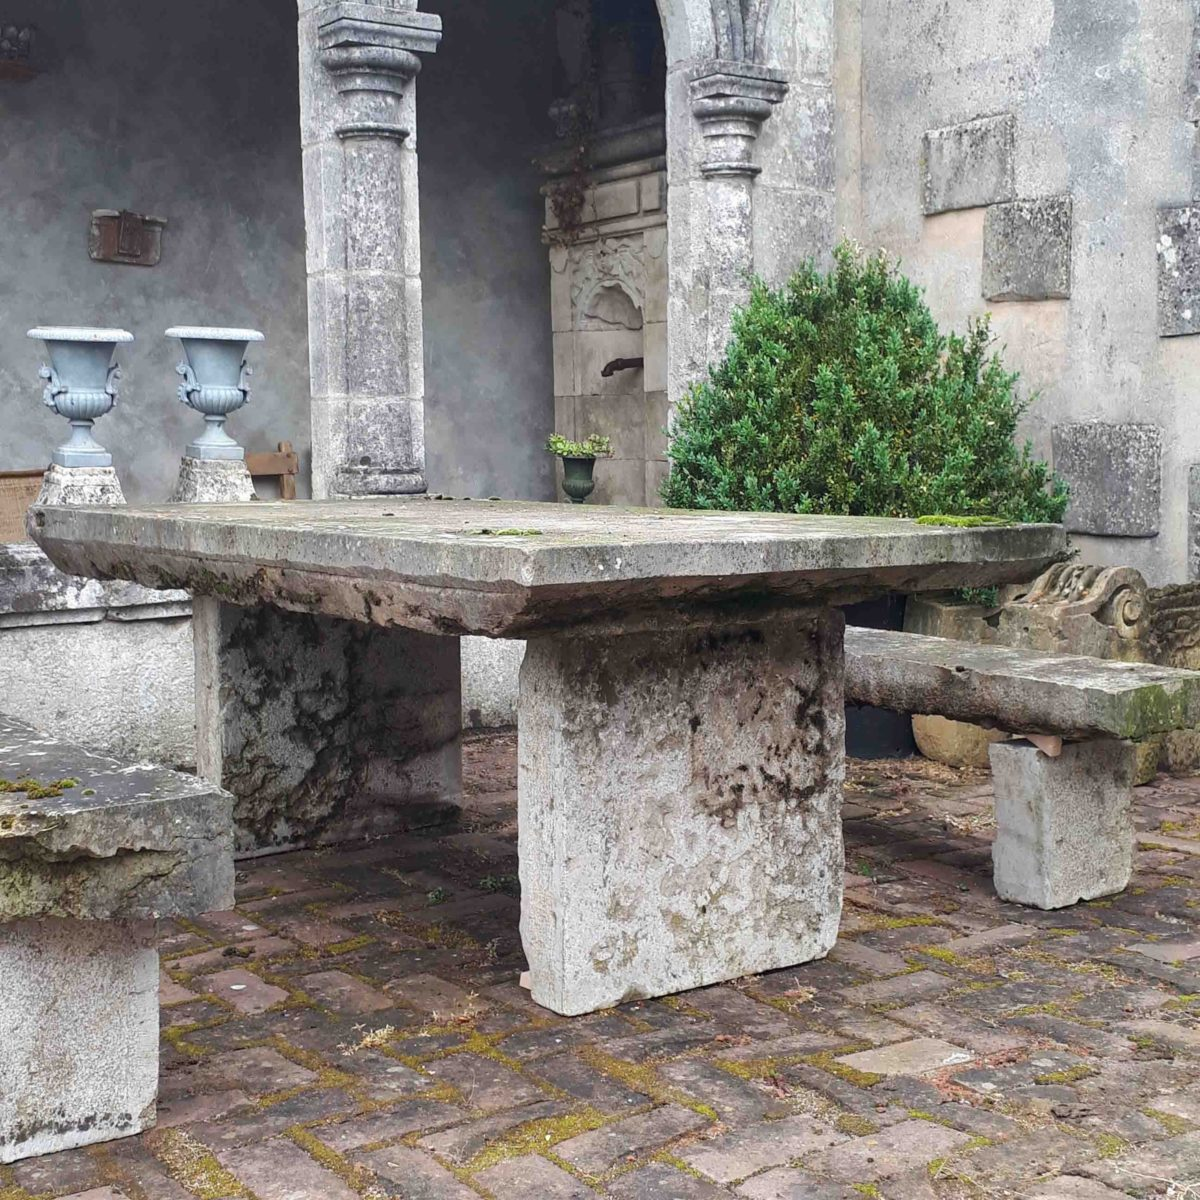 Old natural stone garden table with benches - Piet Jonker